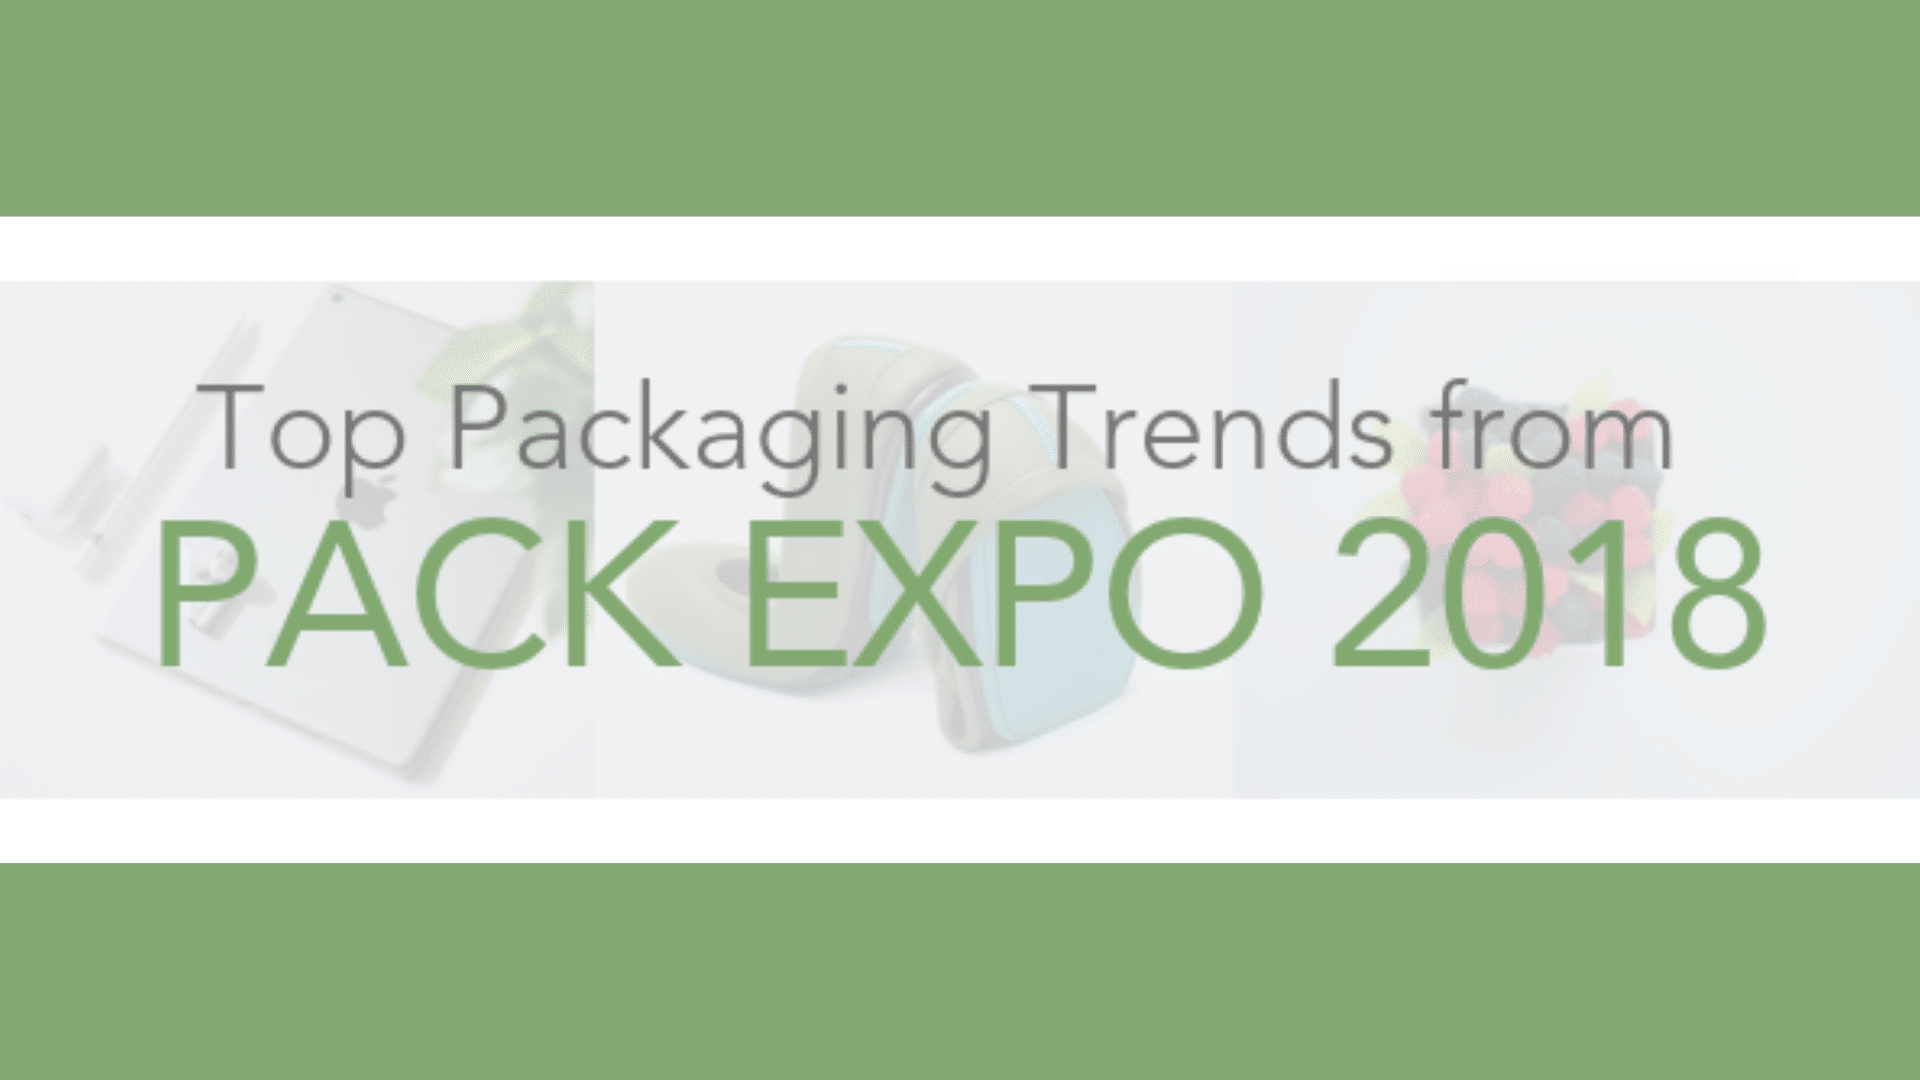 Top Packaging Trends from PACK EXPO 2018 - Specification